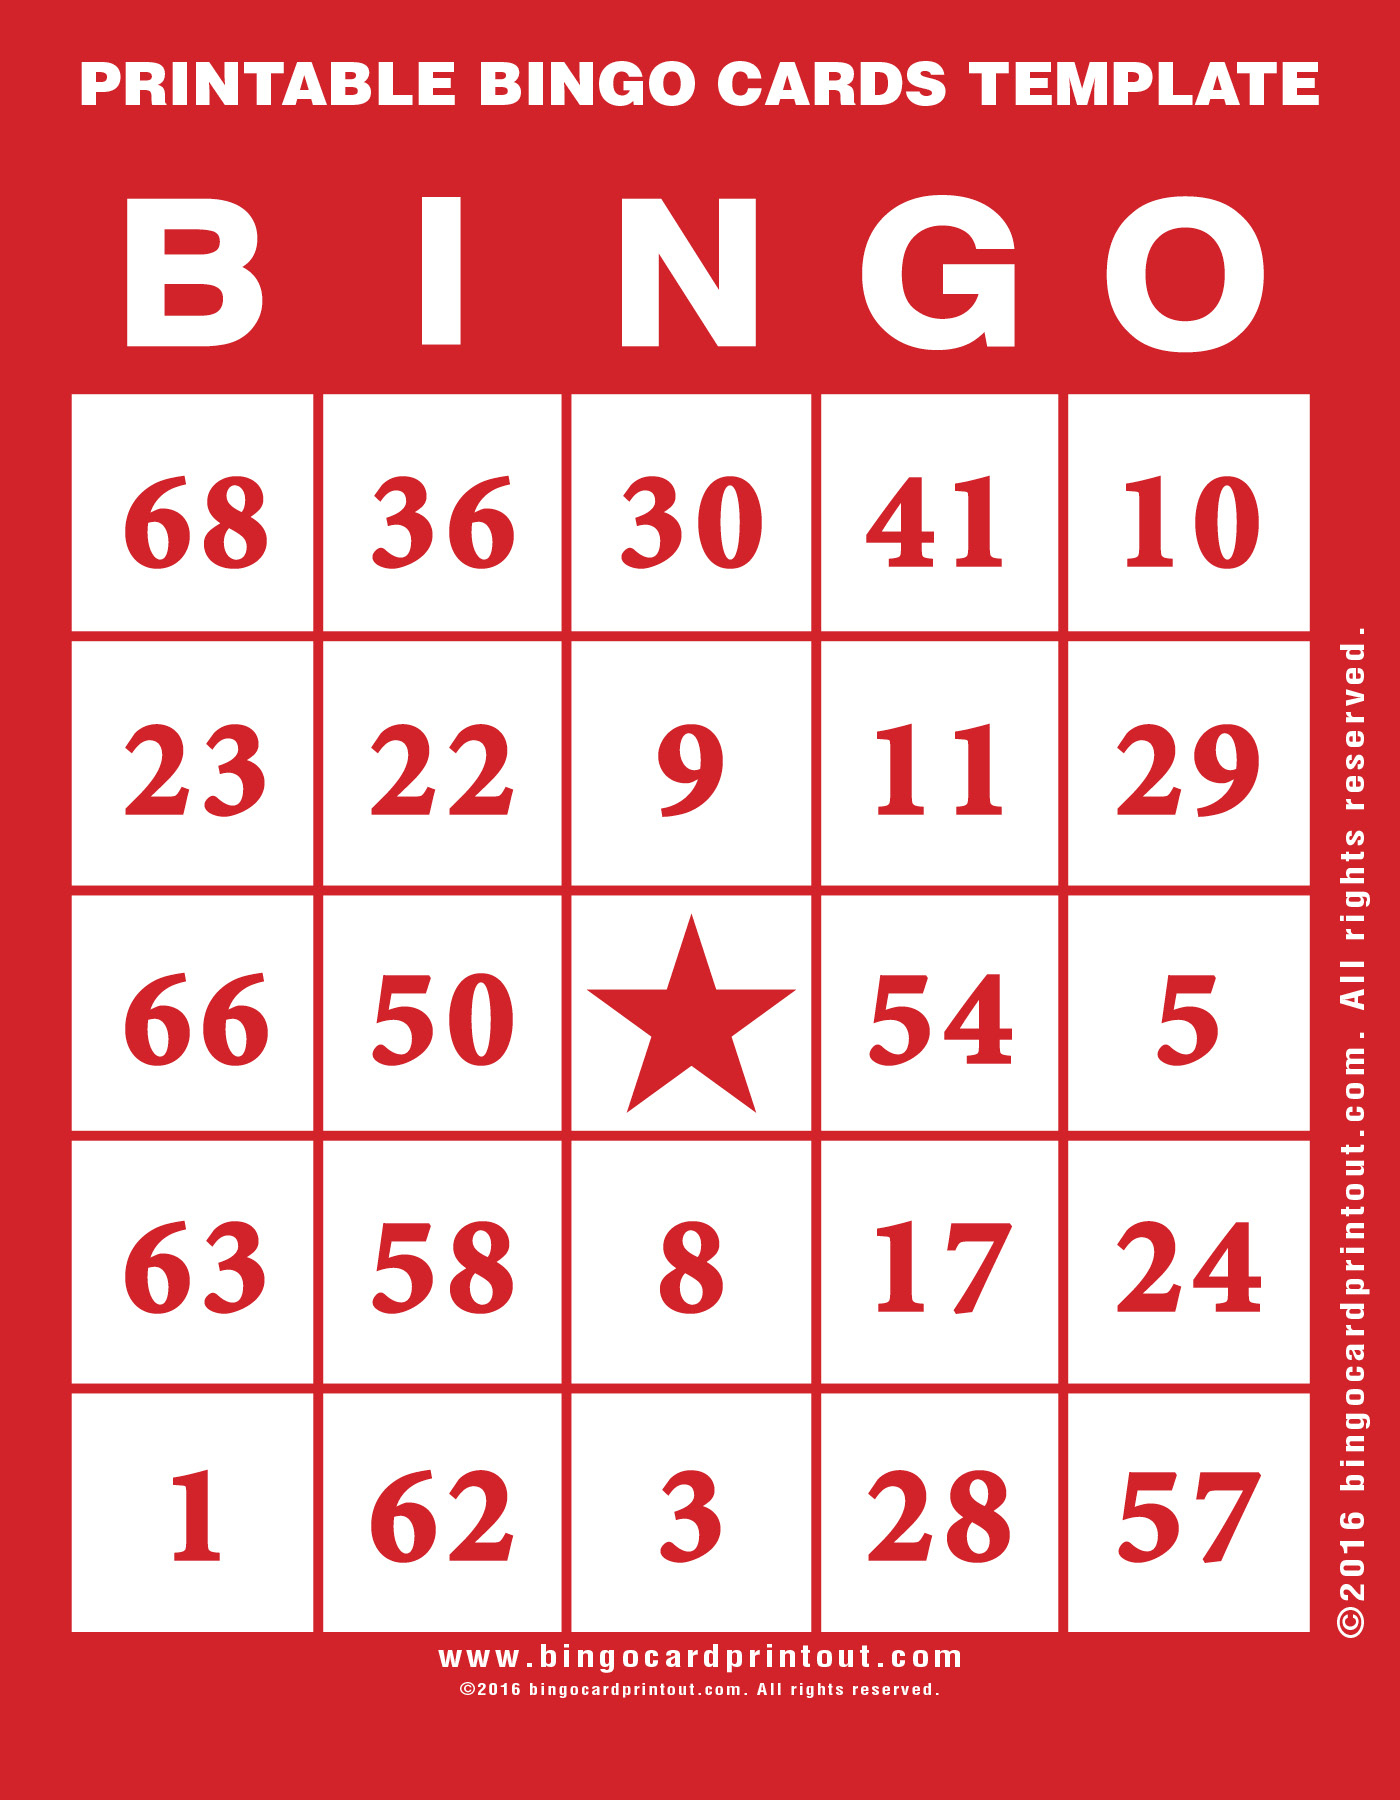 Printable Bingo Cards Template - Bingocardprintout